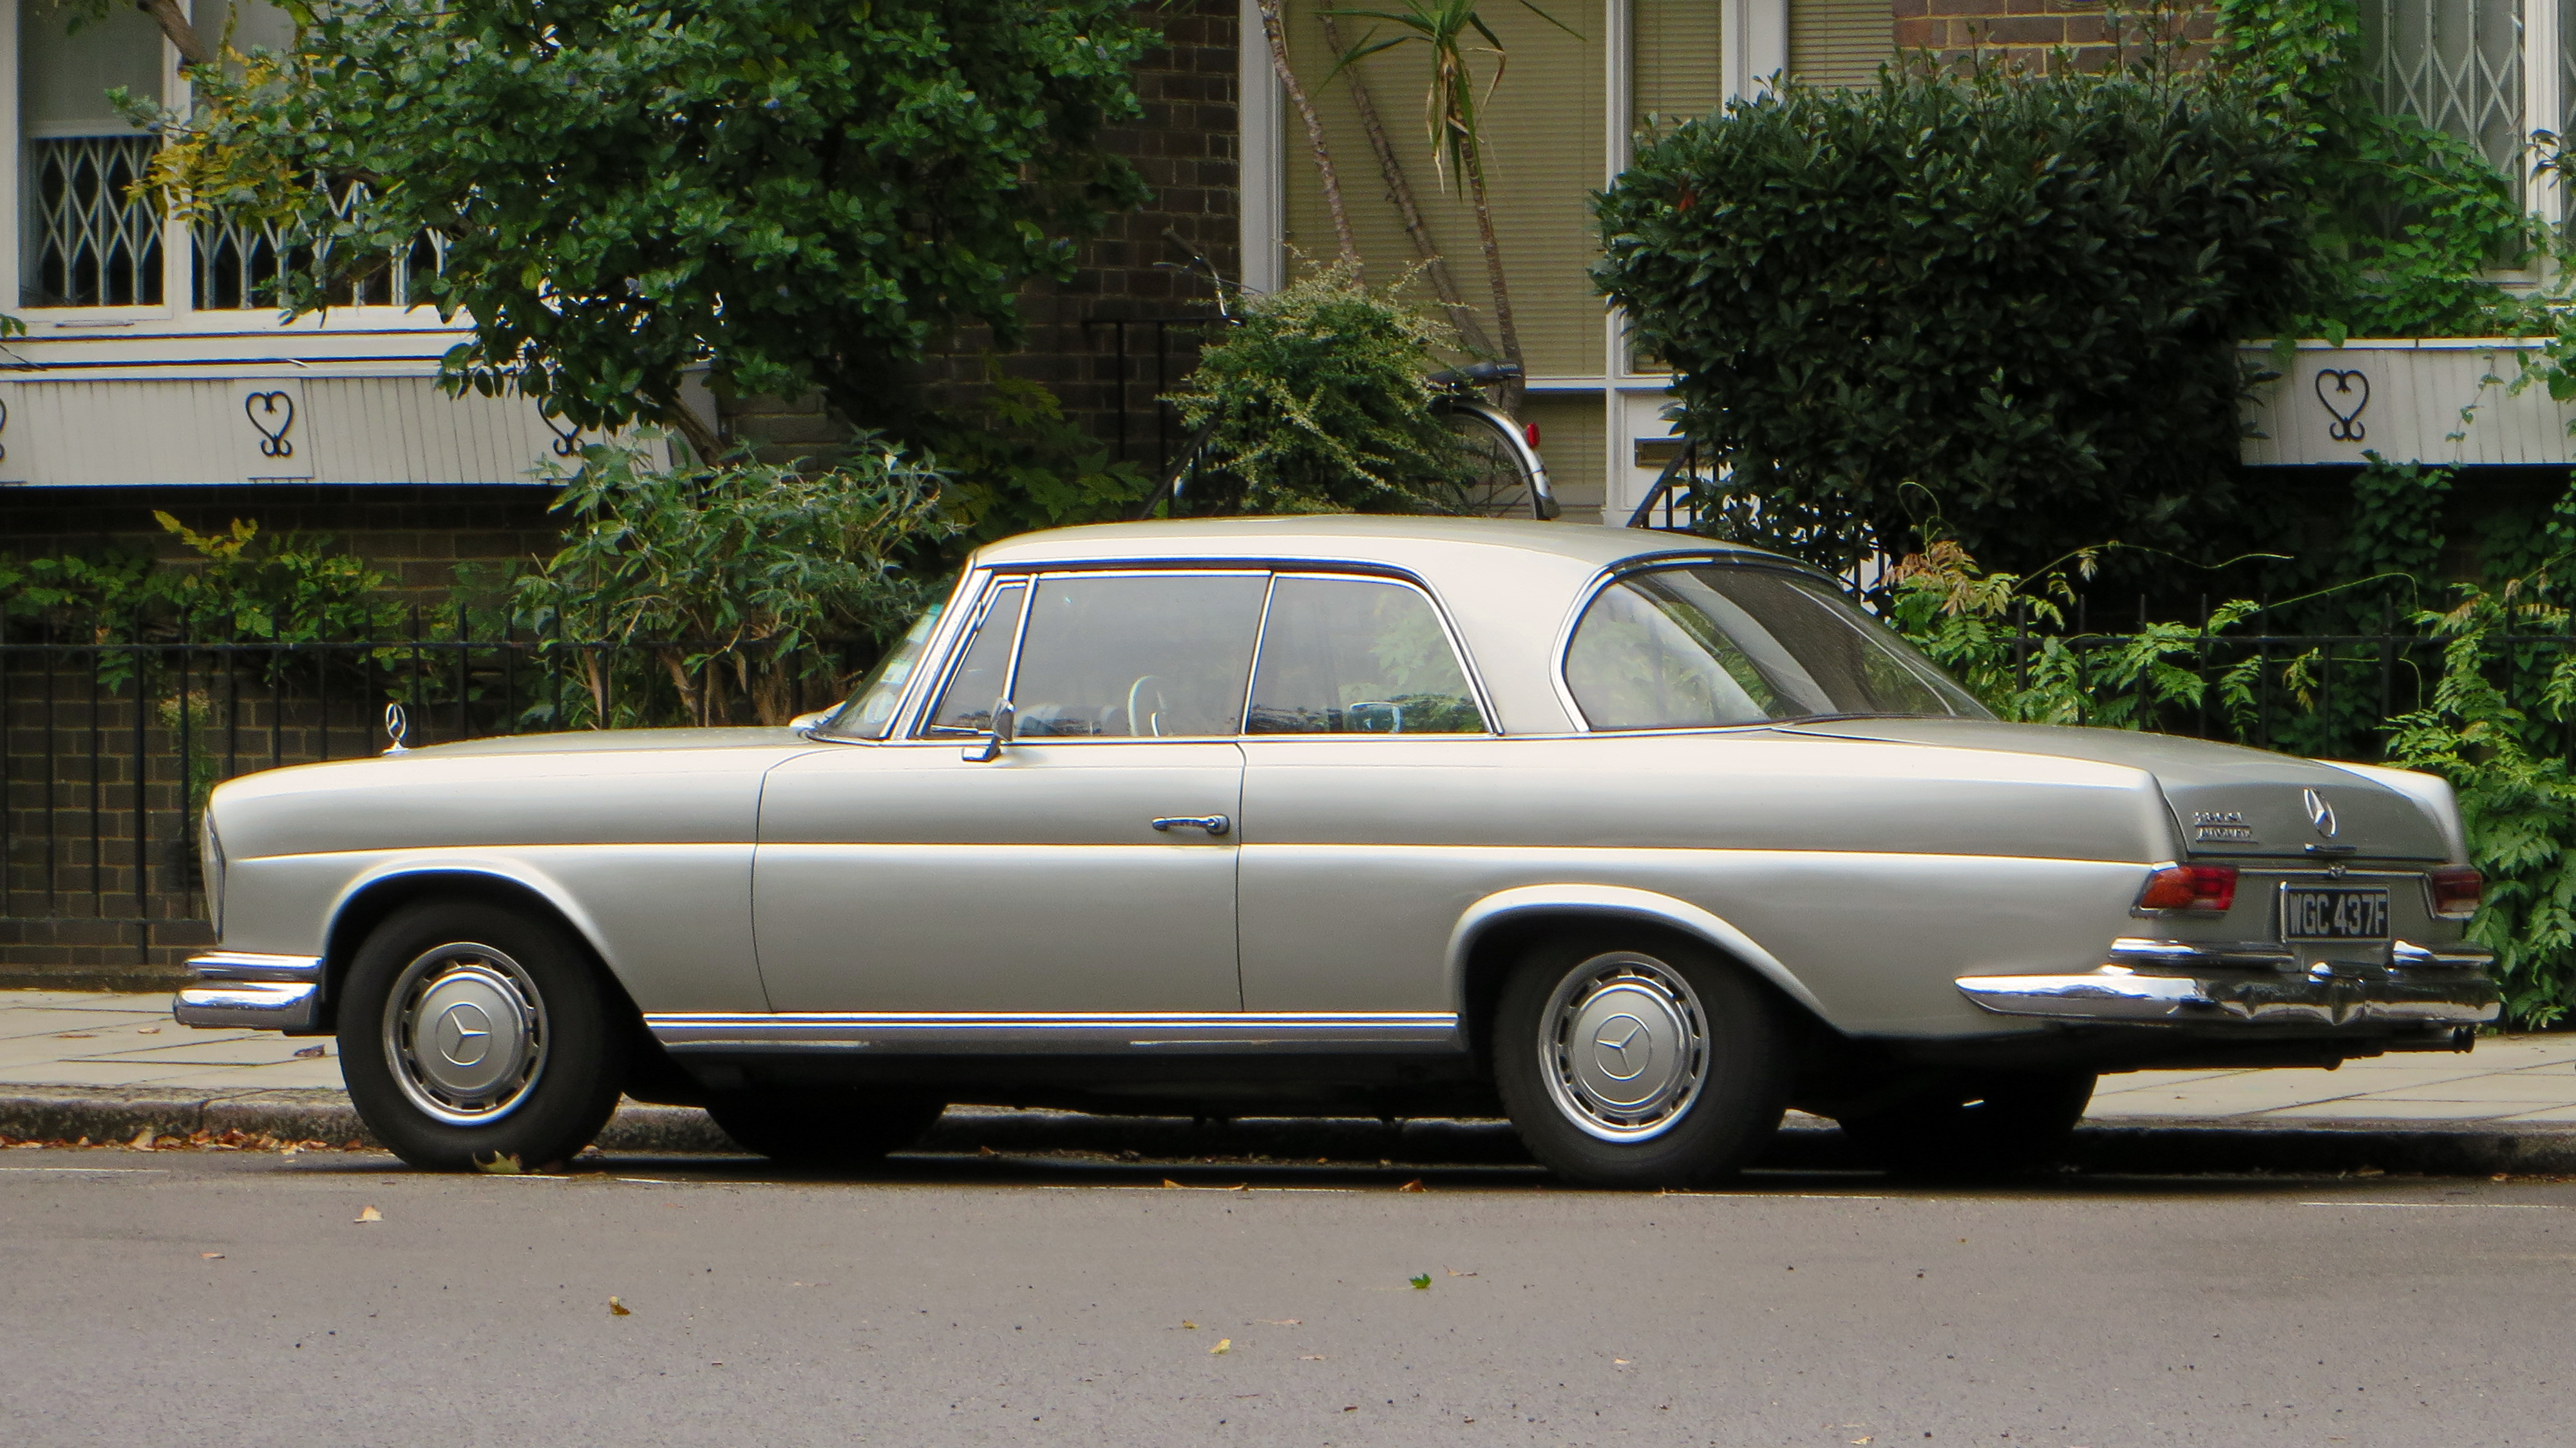 City of westminster london uk 1969 mercedes benz 280 for London mercedes benz